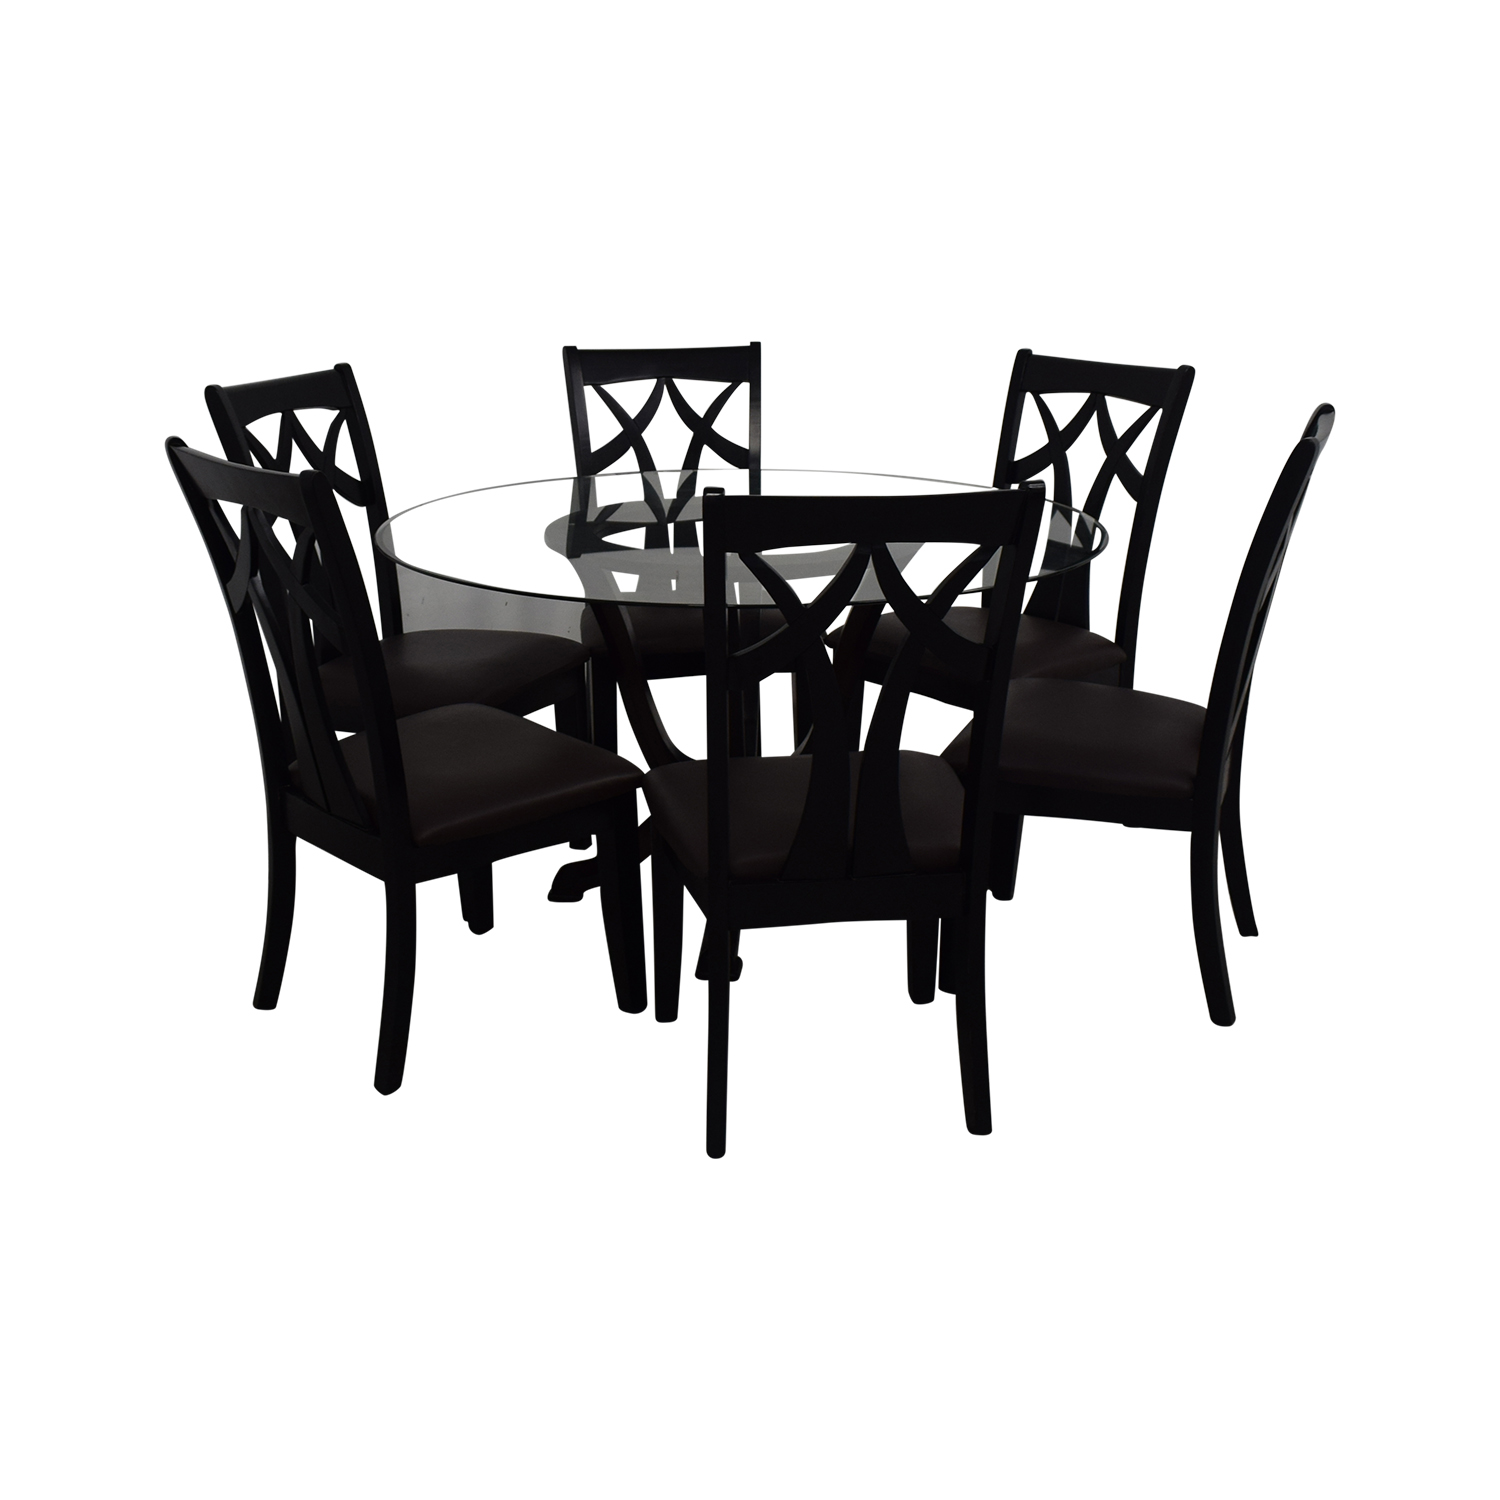 Raymour & Flanigan Contemporary Style Round Table With Six chairs / Dining Sets